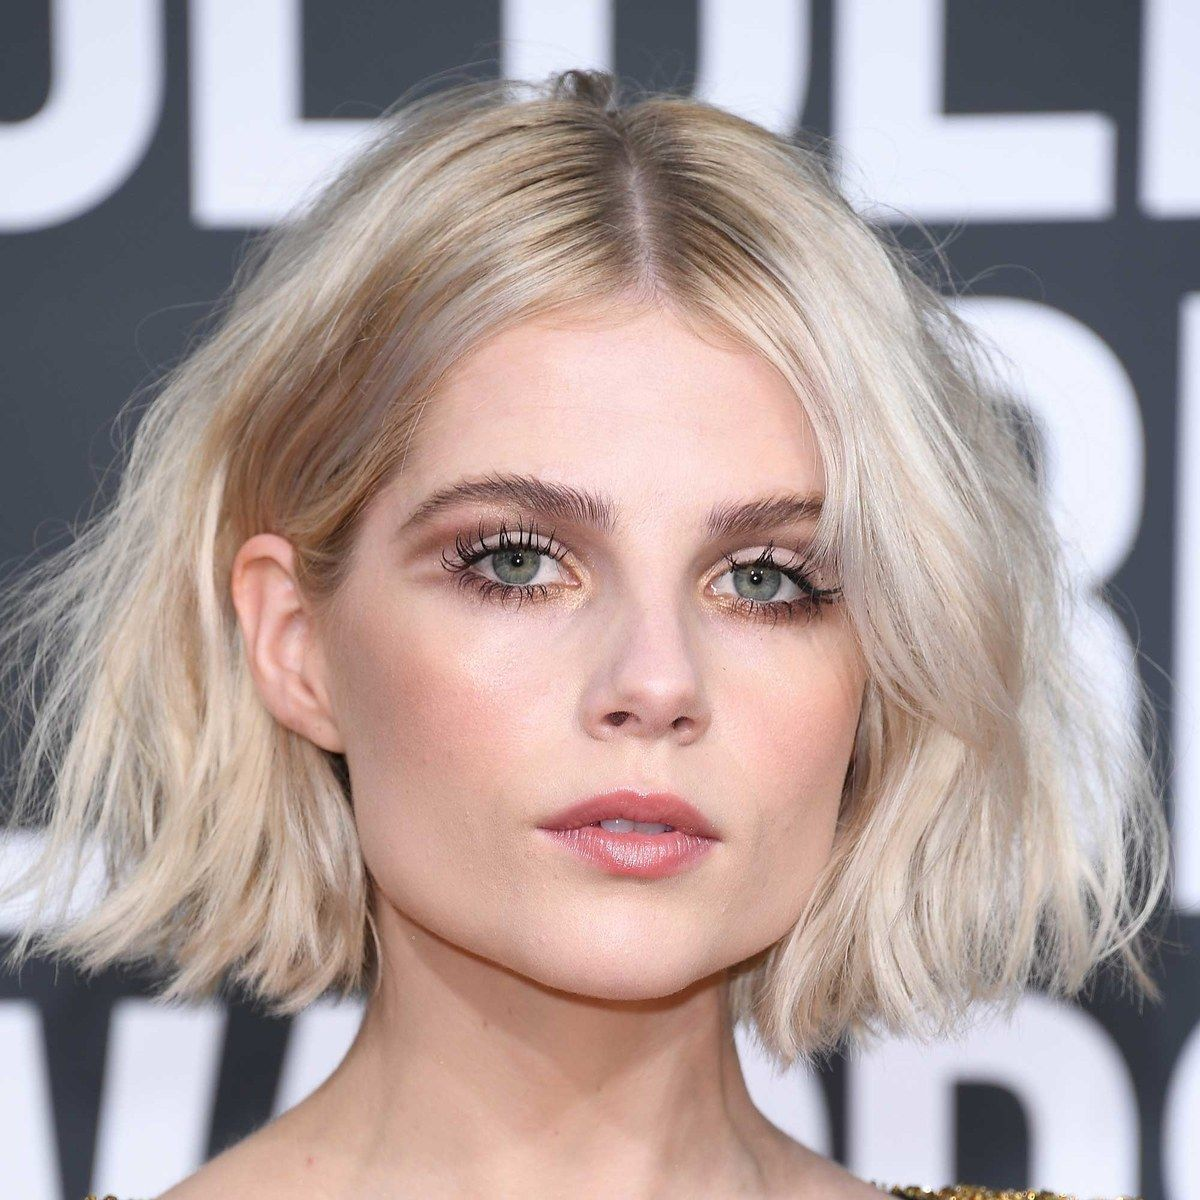 The Prettiest Beauty Looks of the 2019 Golden Globes